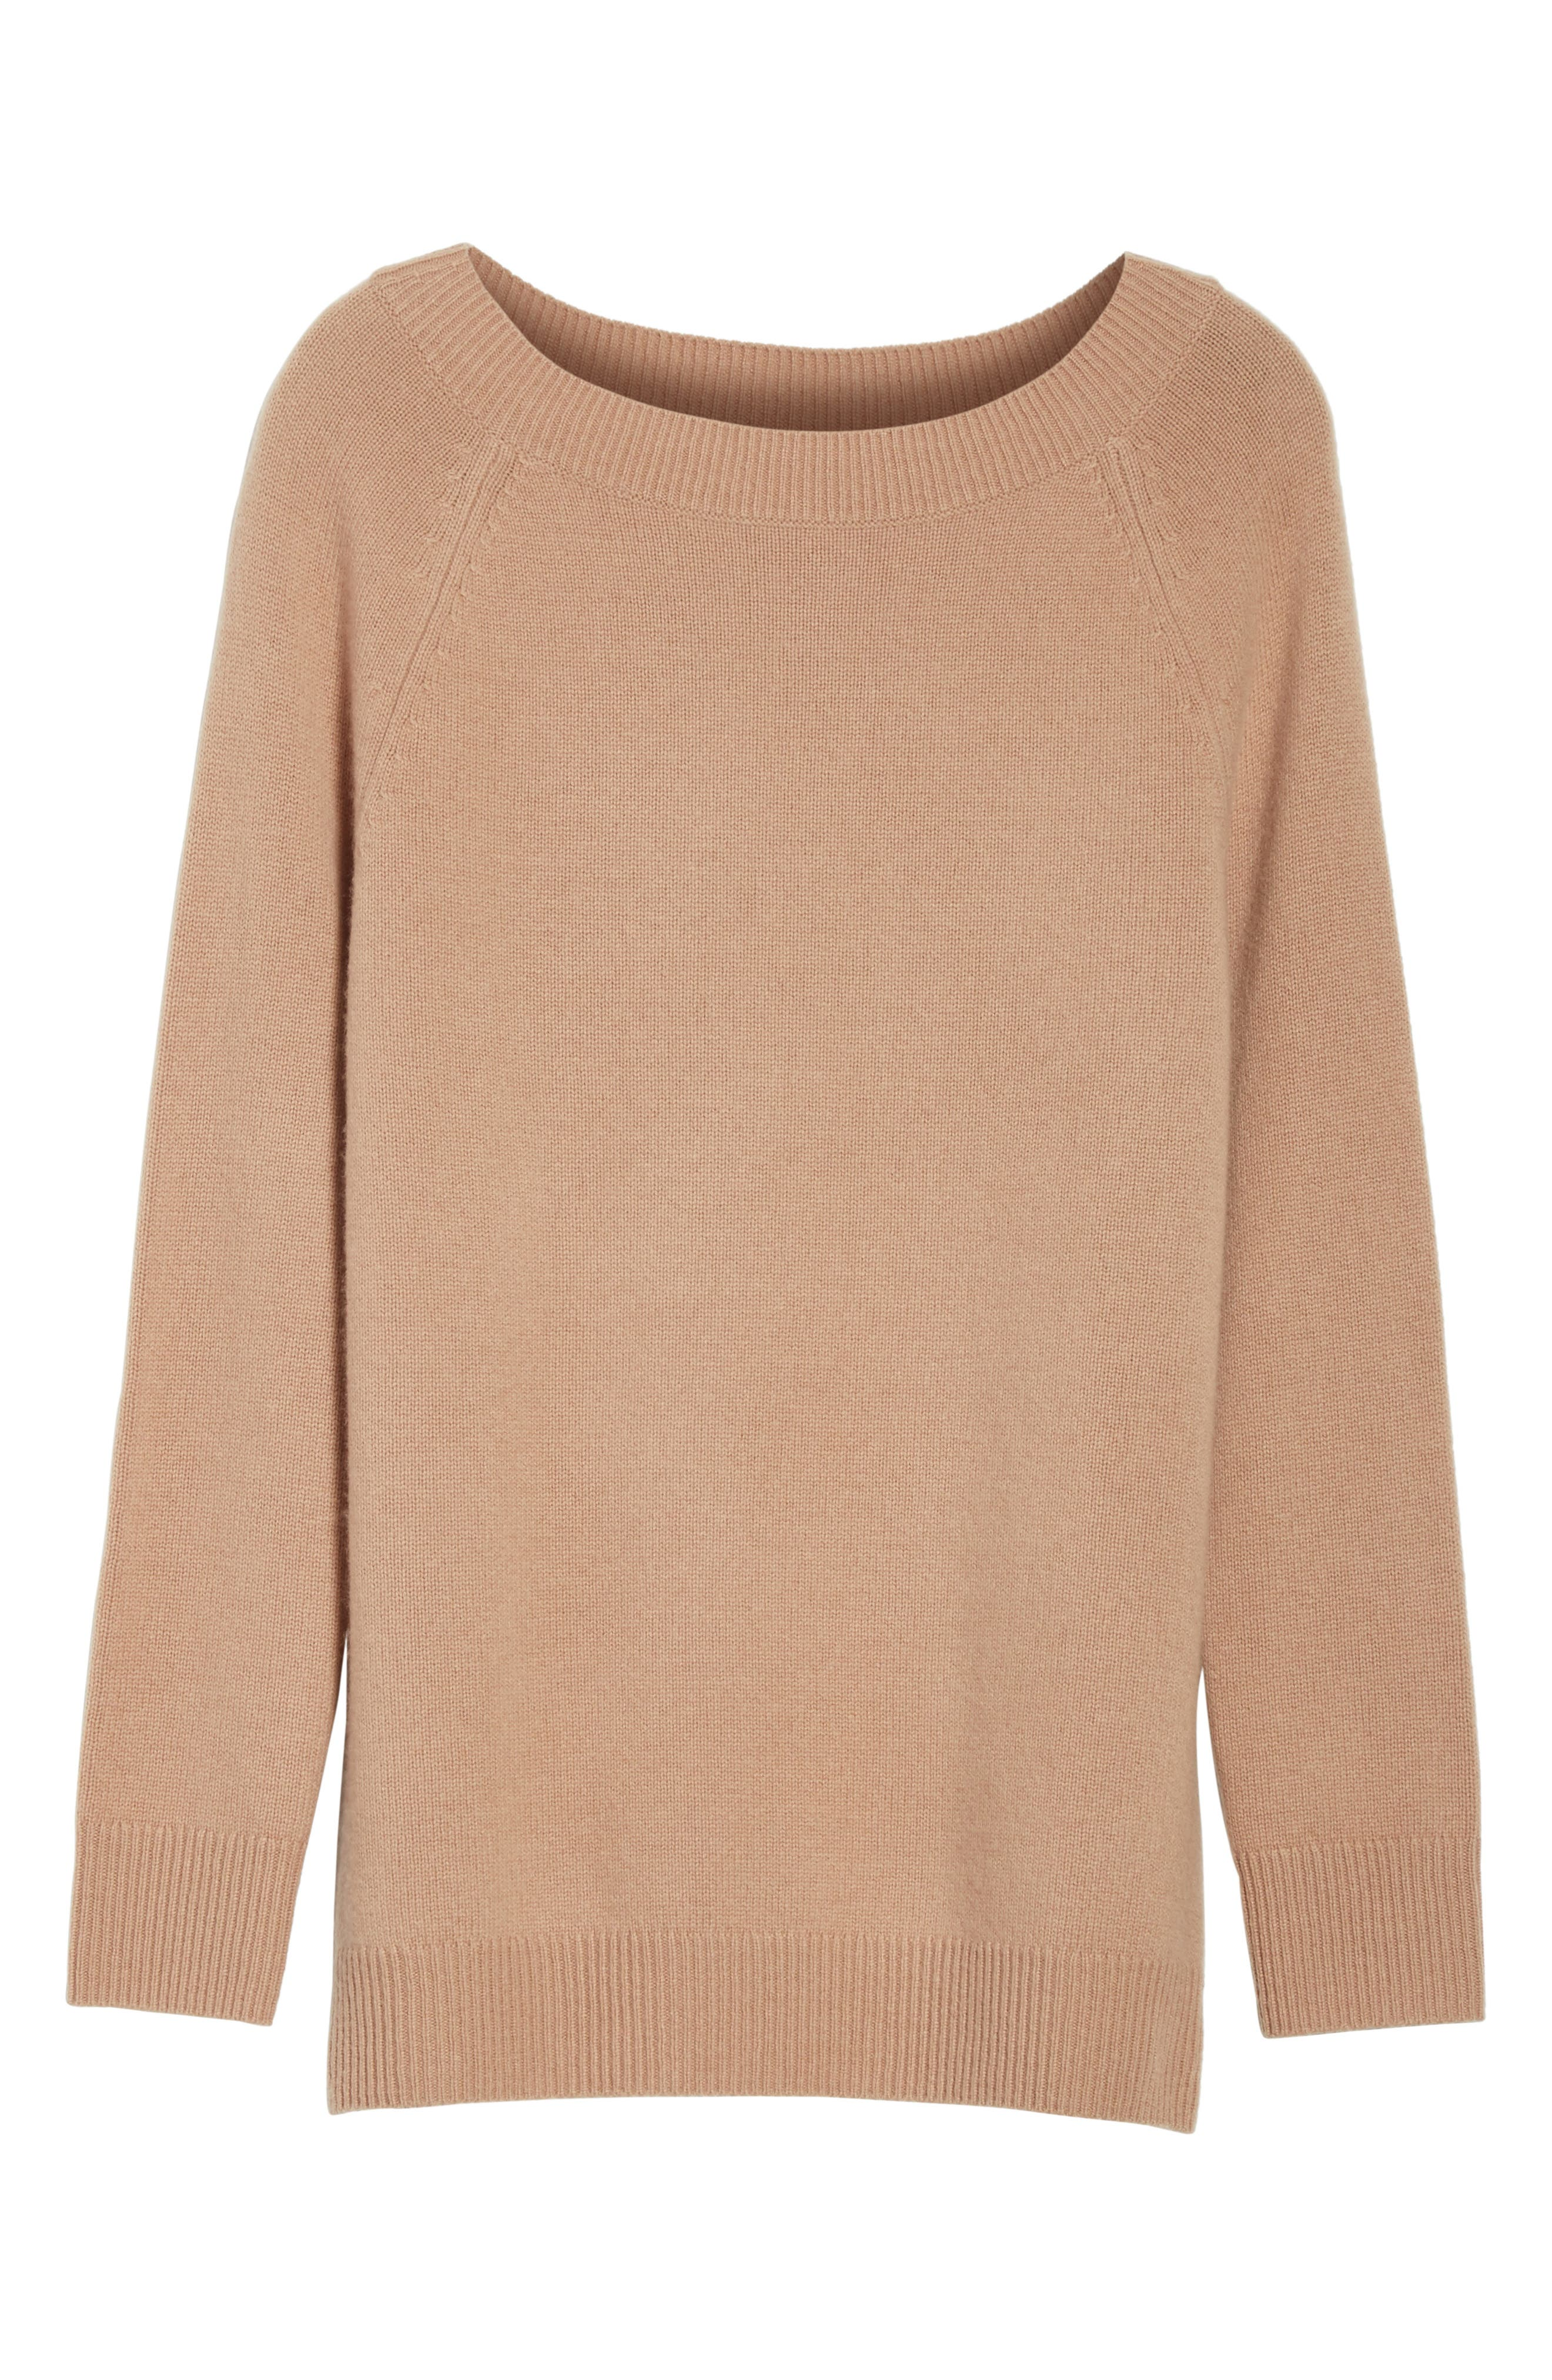 Cody Wool & Cashmere Boatneck Sweater,                             Alternate thumbnail 6, color,                             Camel